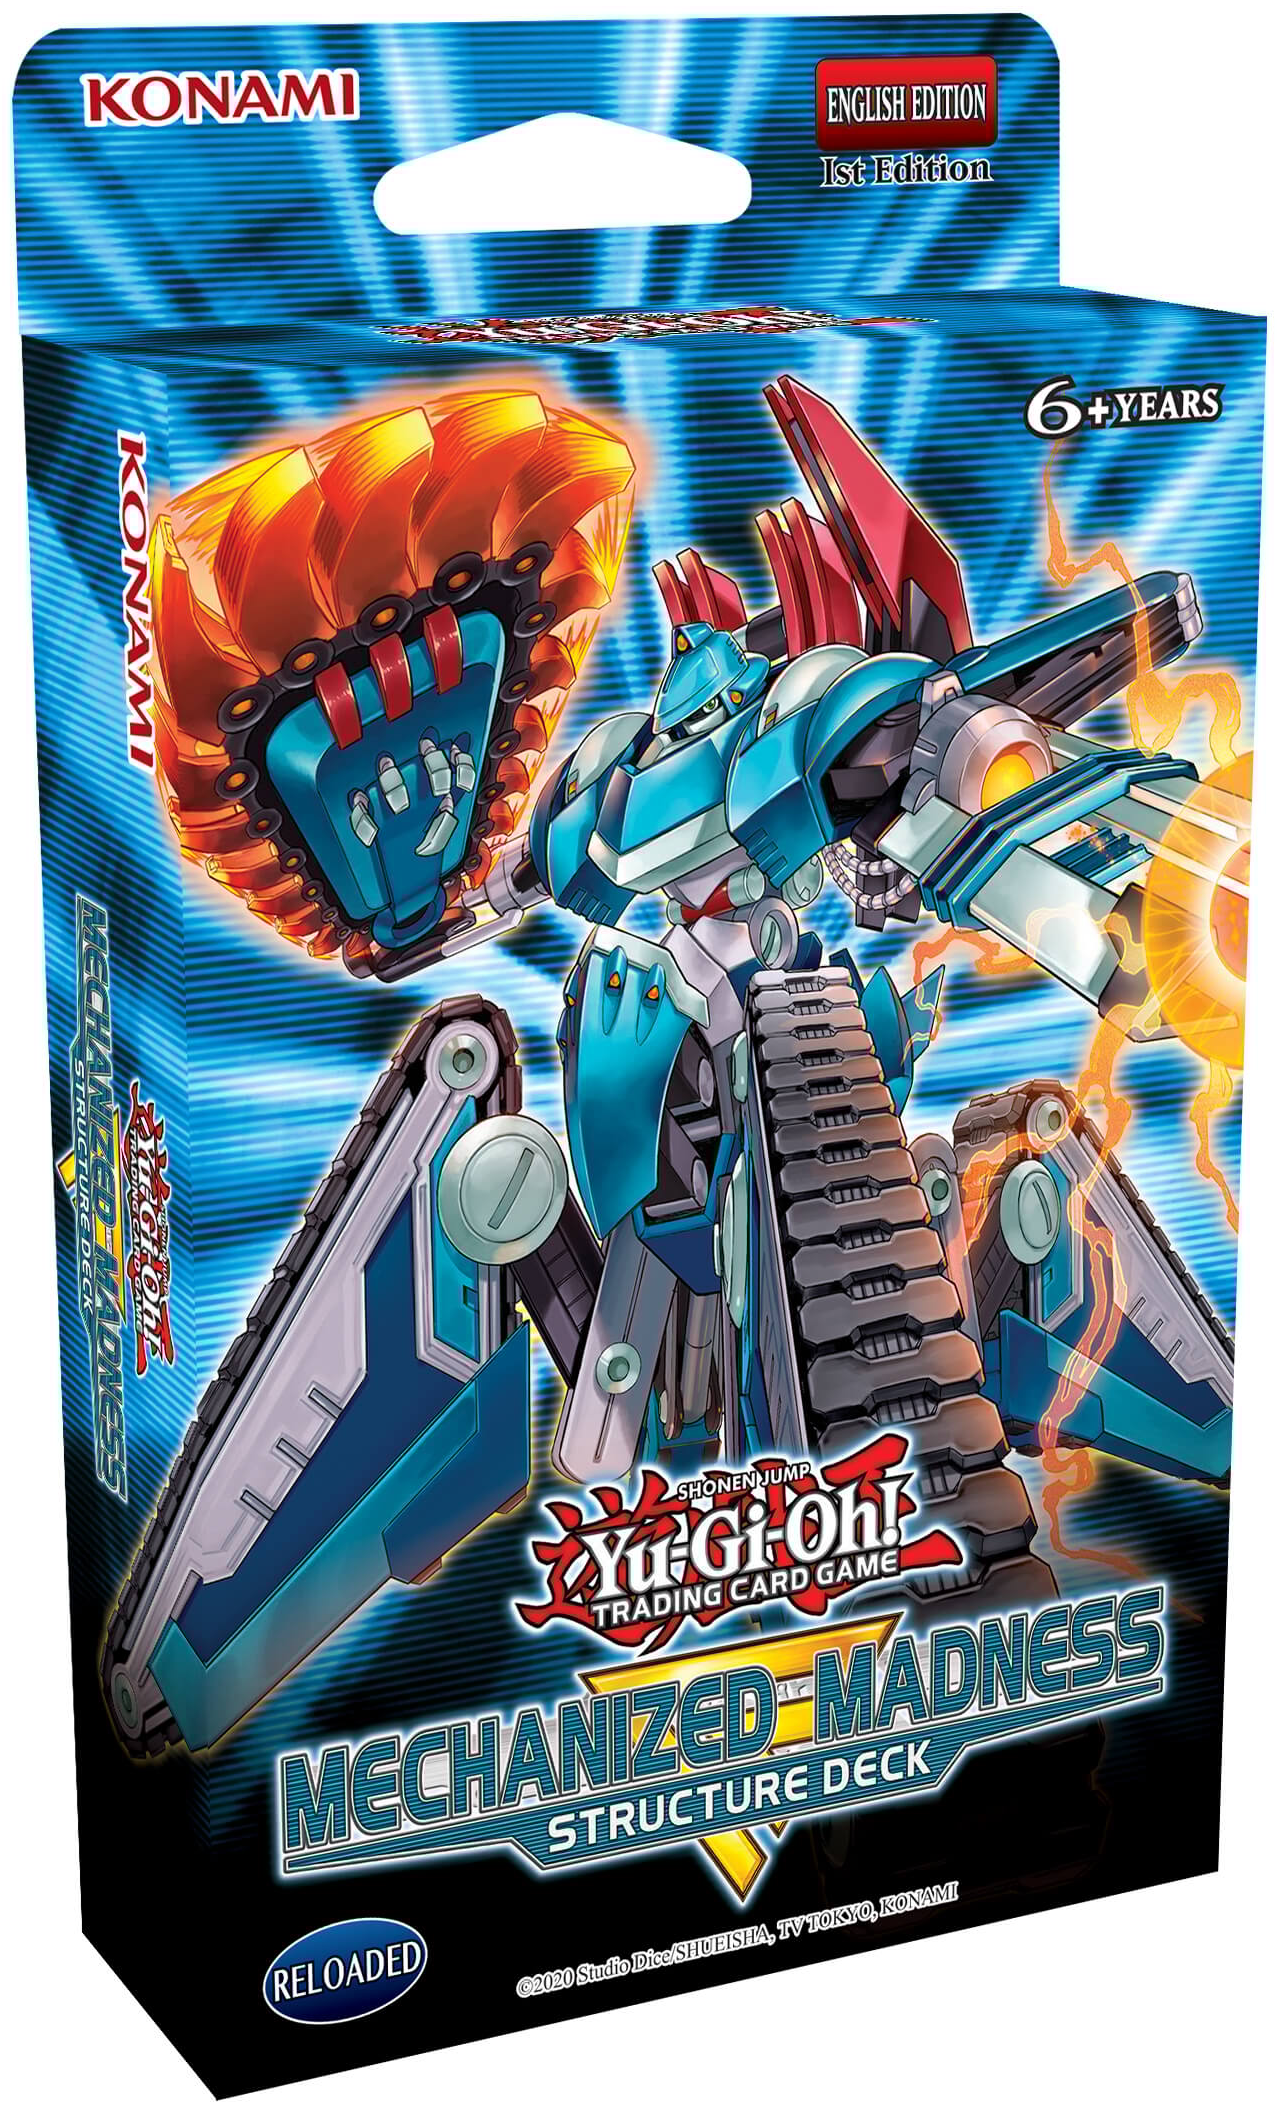 Mechanized Madness, Yu-Gi-Oh!